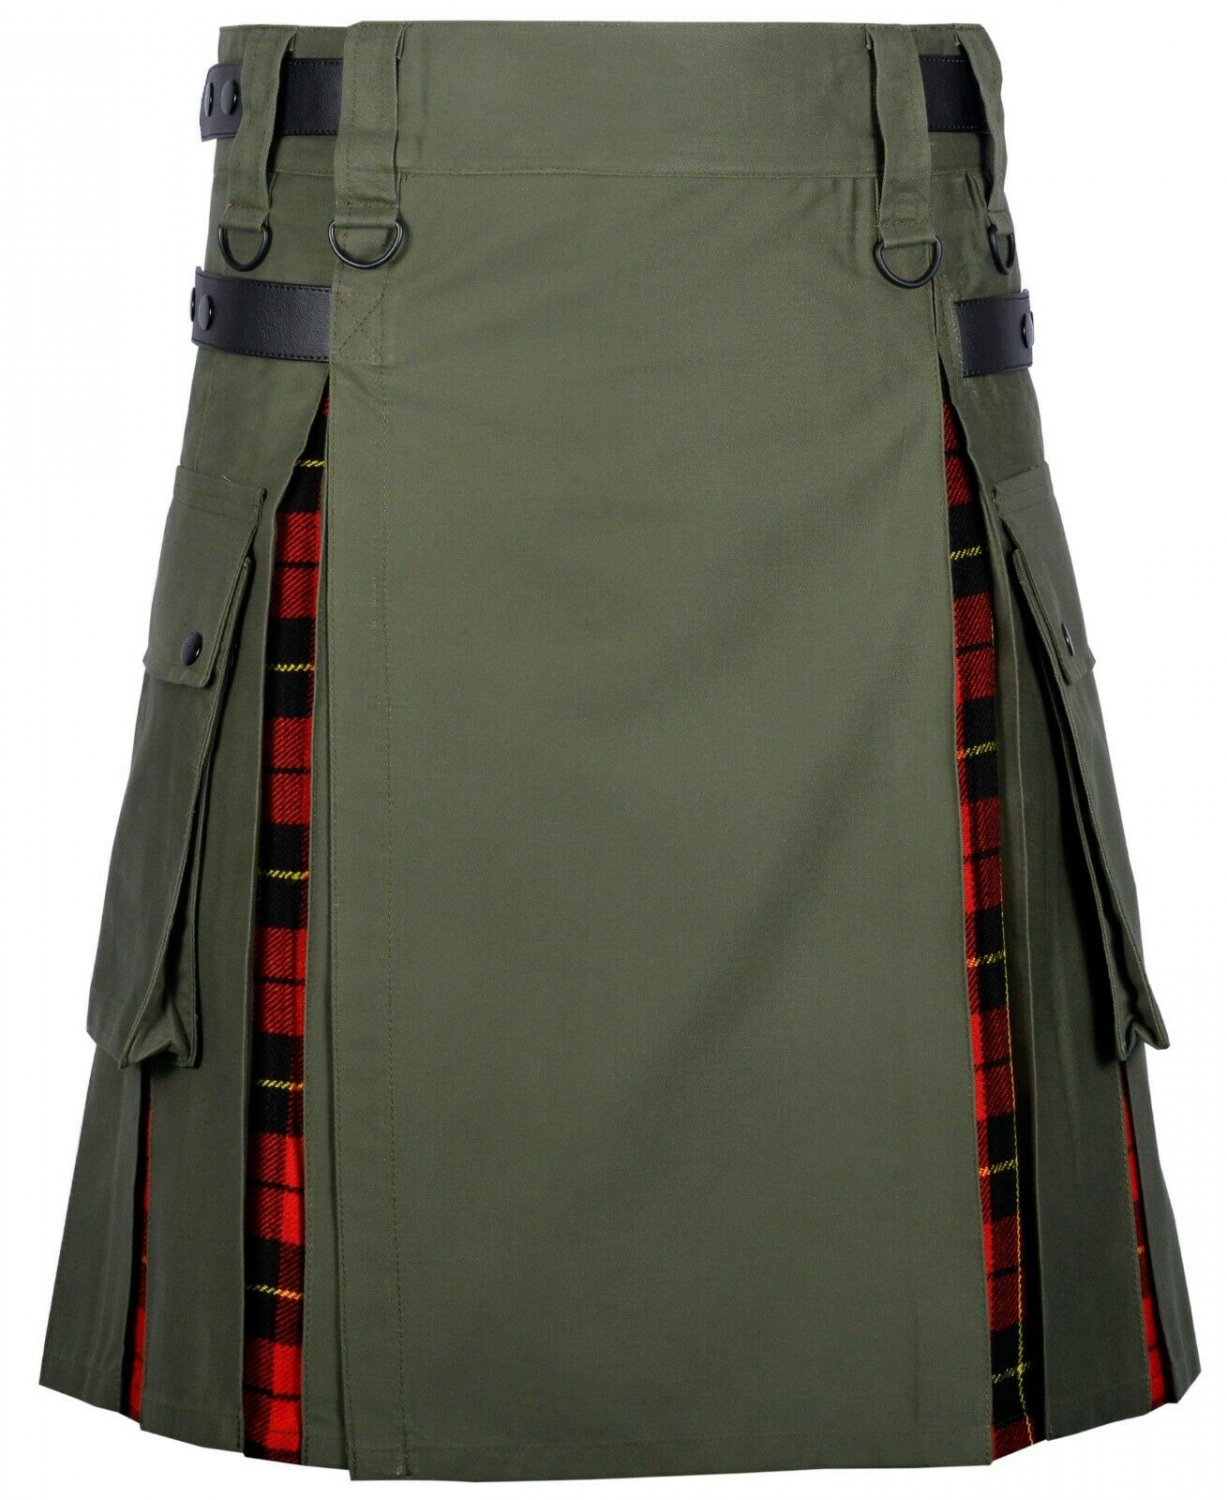 44 Size Olive Green Cotton-Wallace tartan Scottish Utility Cargo Hybrid Cotton Kilt For Men